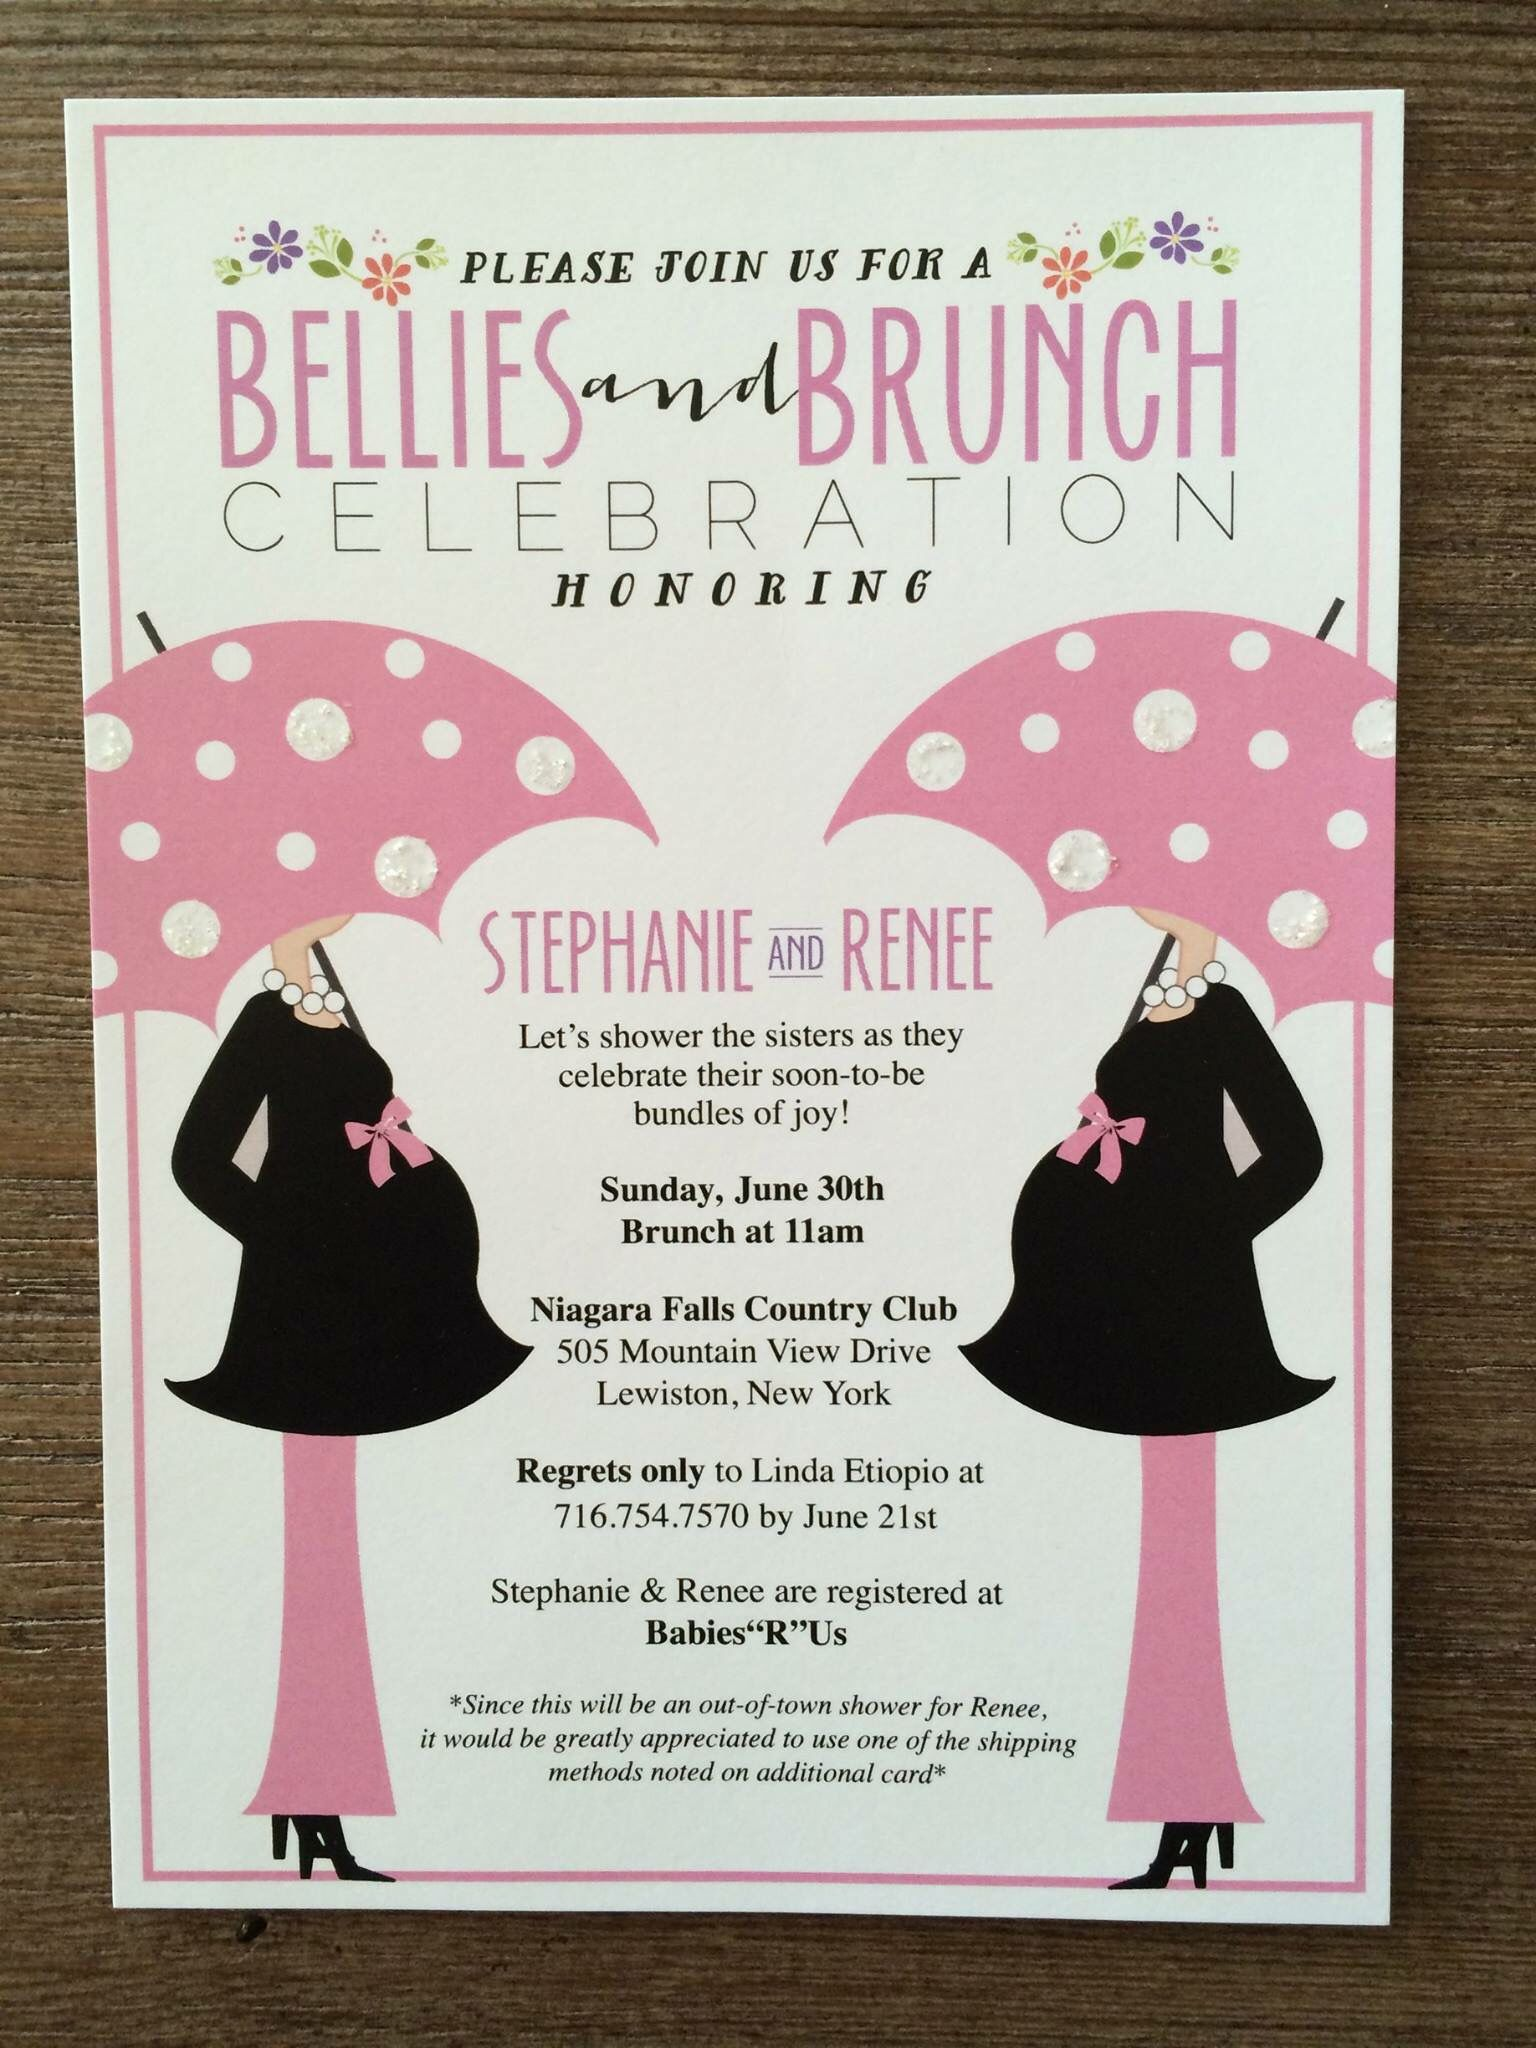 These Bellies Brunch Invitations are perfect for a joint